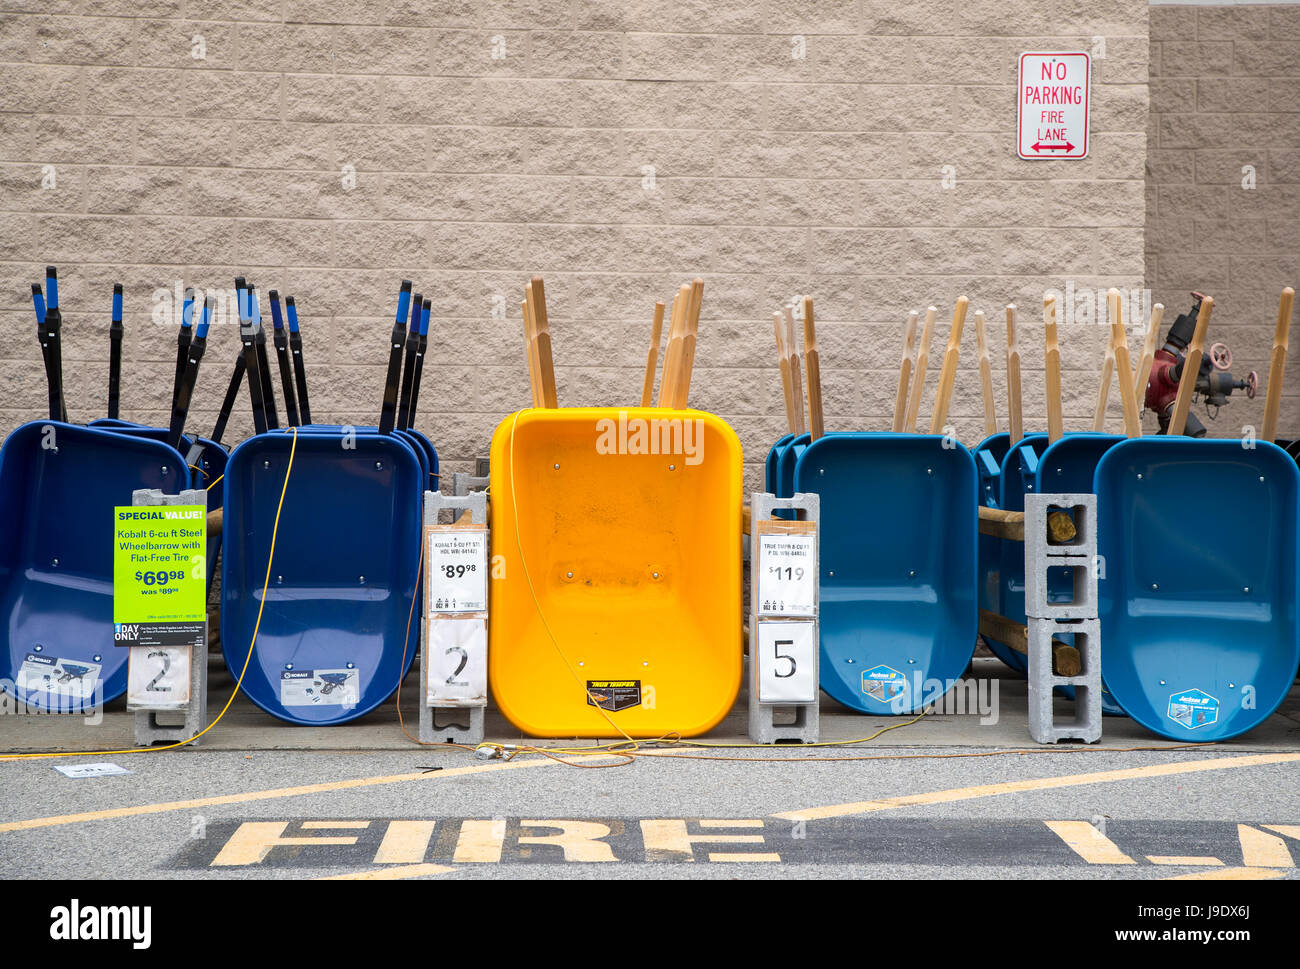 Wheelbarrows at a Lowe's home improvement store in Monroe, New York - Stock Image